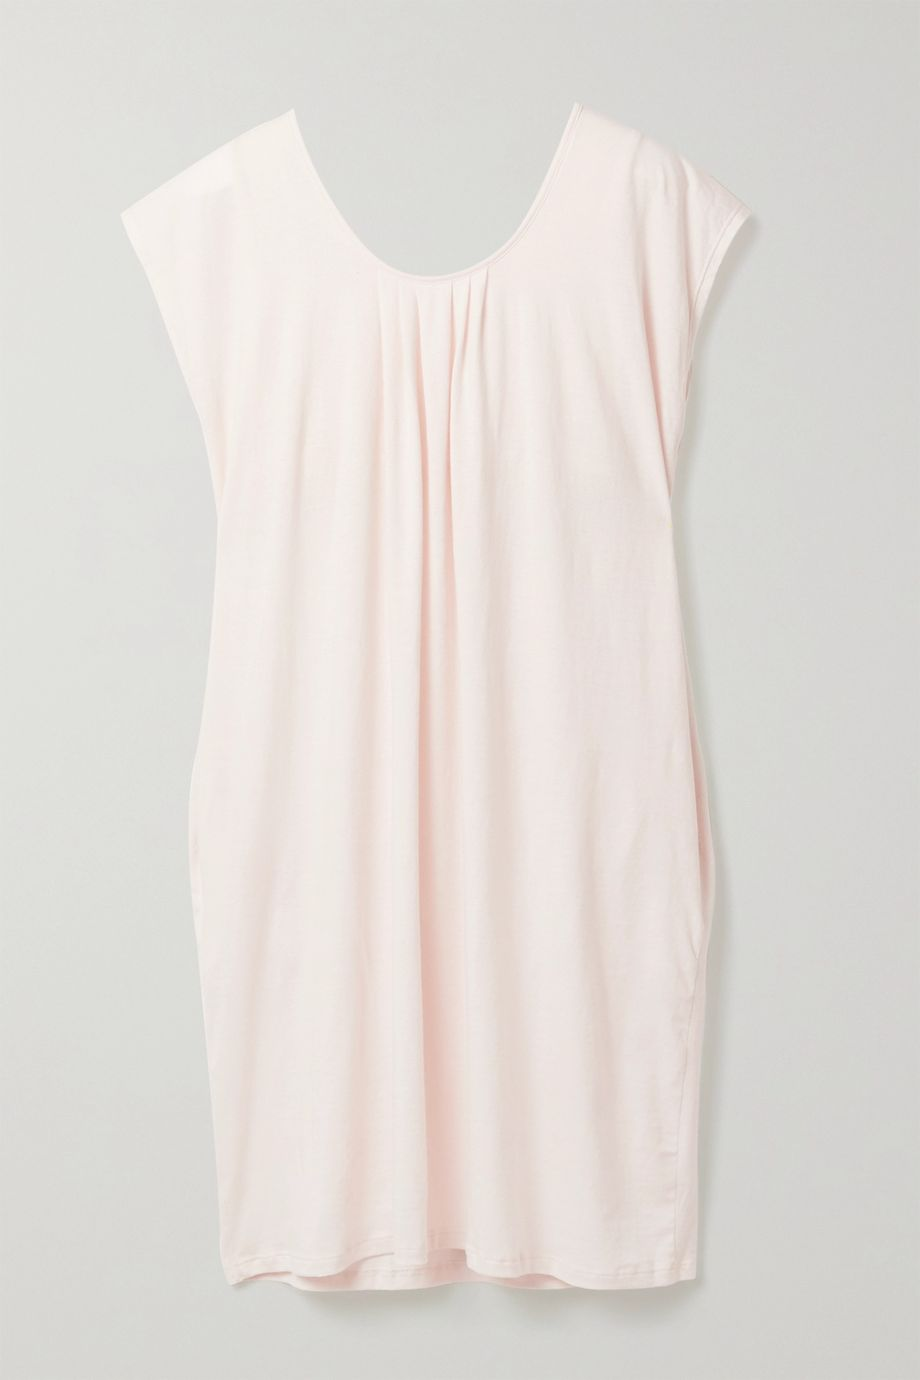 Skin Kellie organic Pima cotton-jersey nightdress